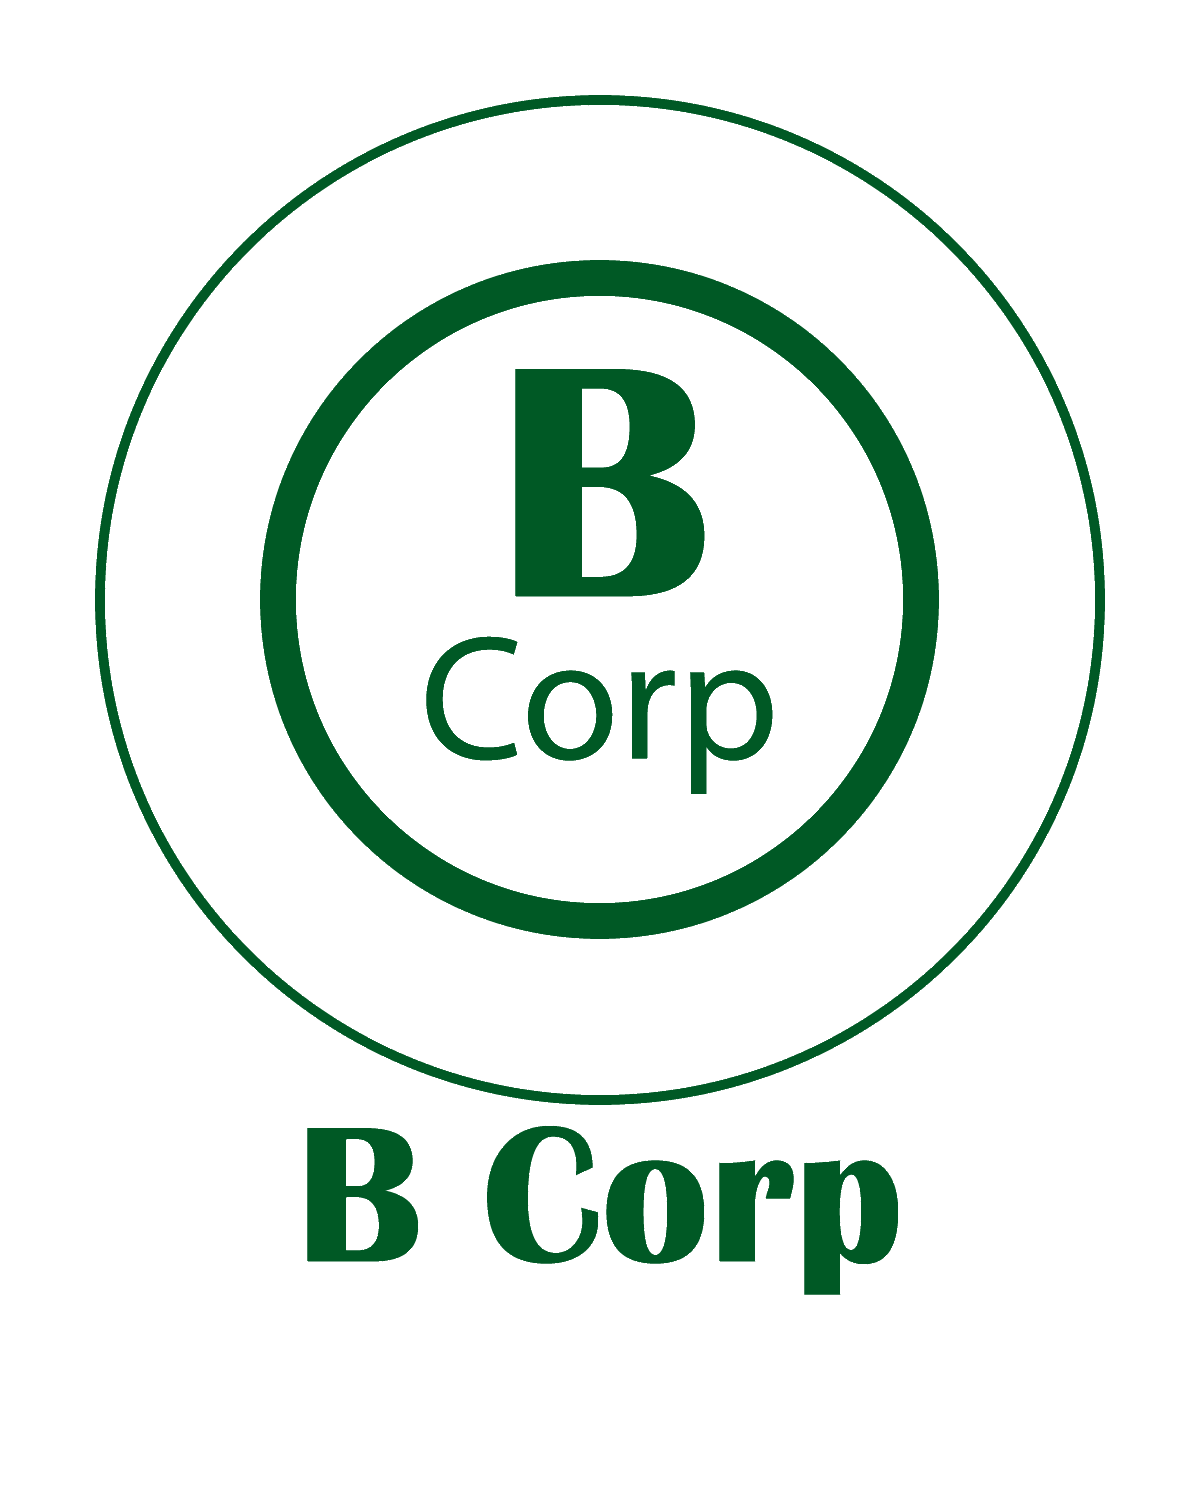 The Green Bundle B Corp Logo